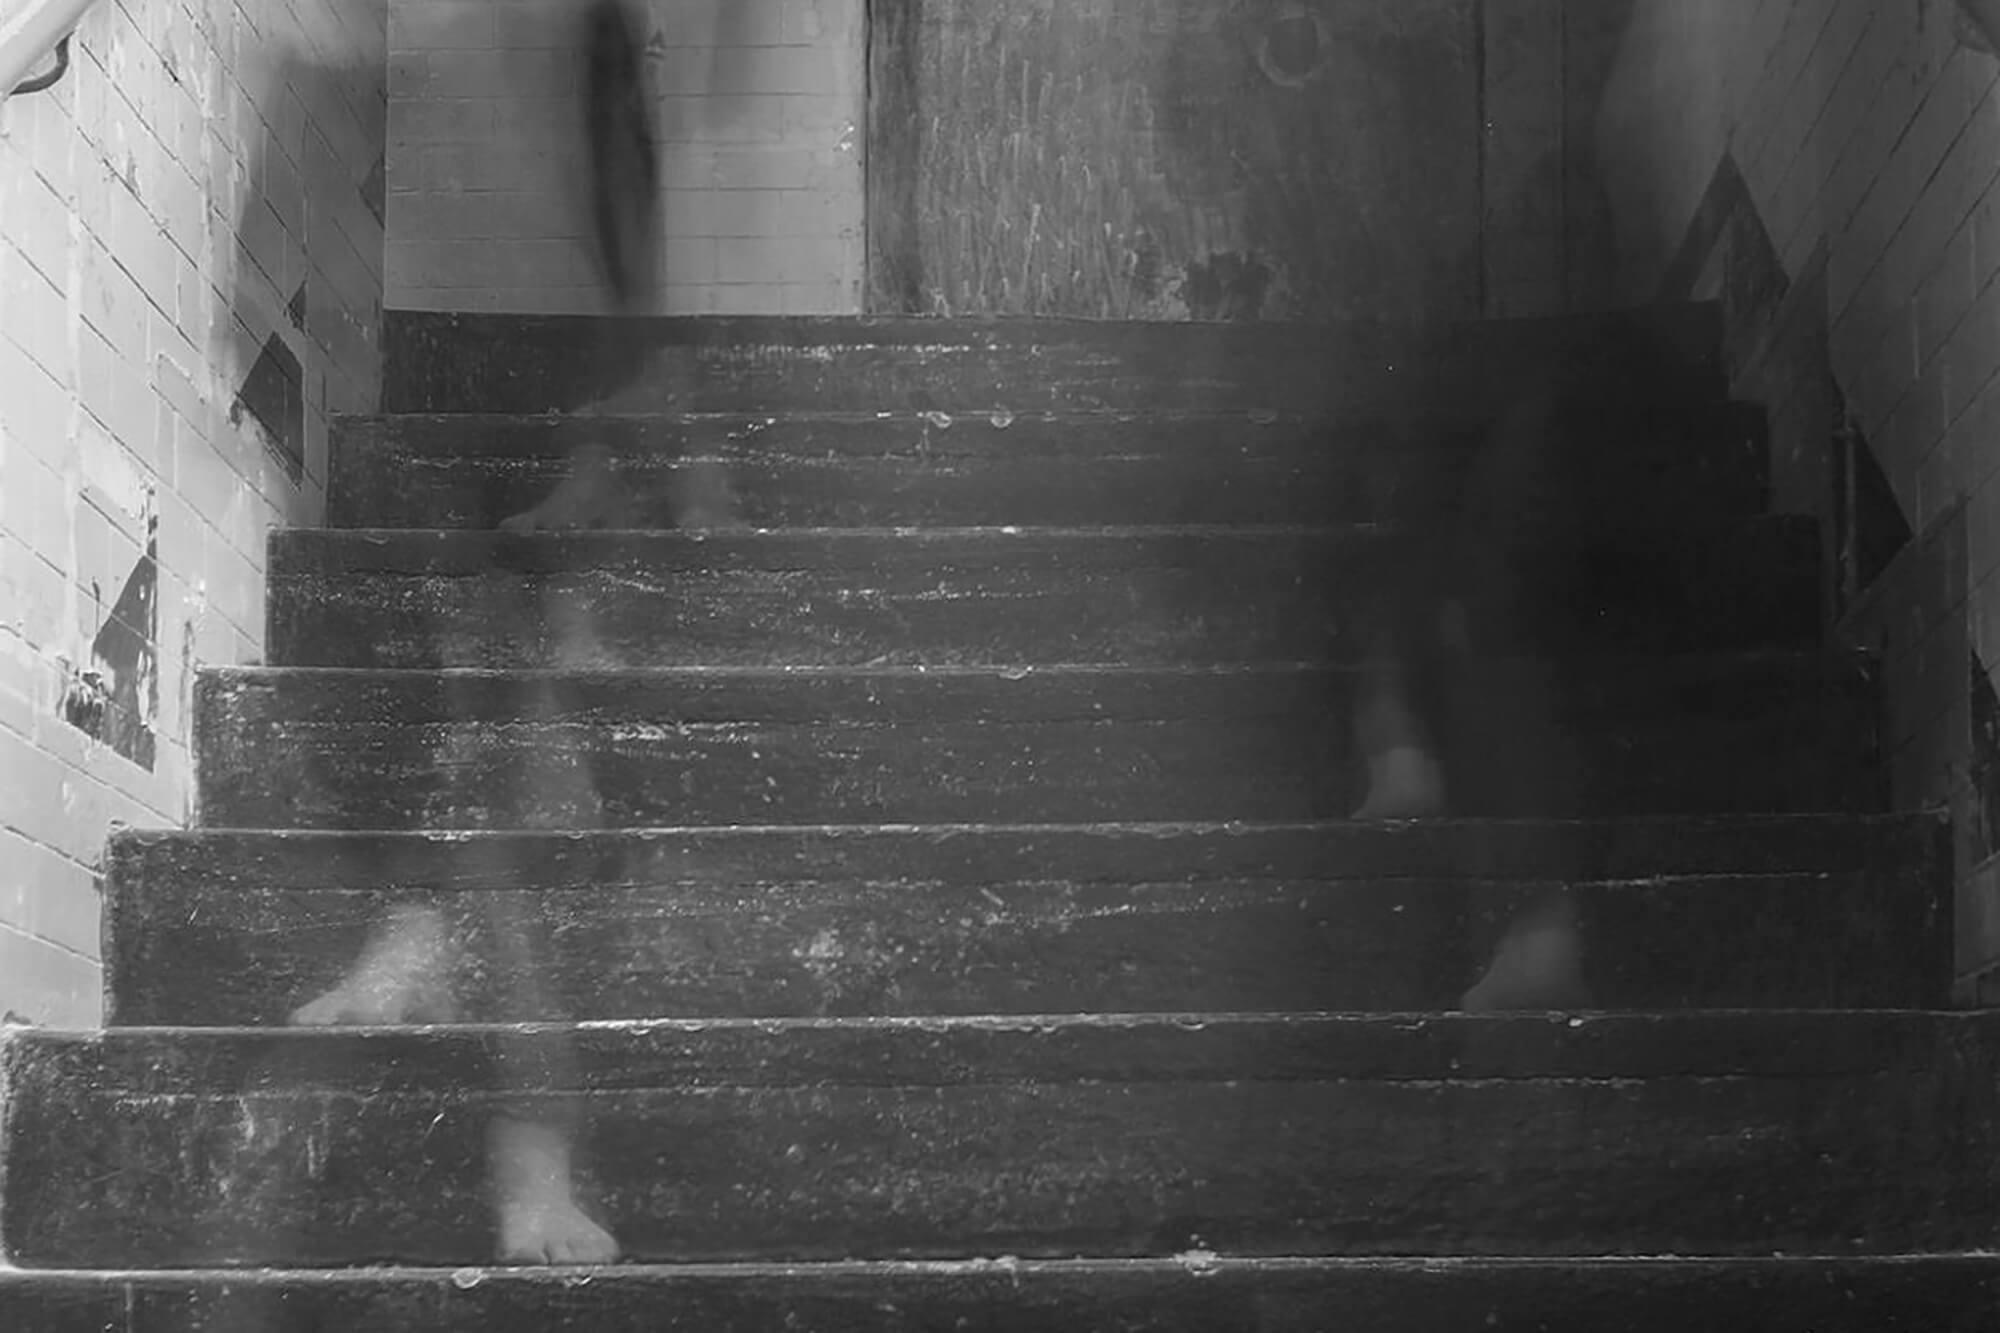 A long-exposure photograph with ghost images of people walking up and down steps